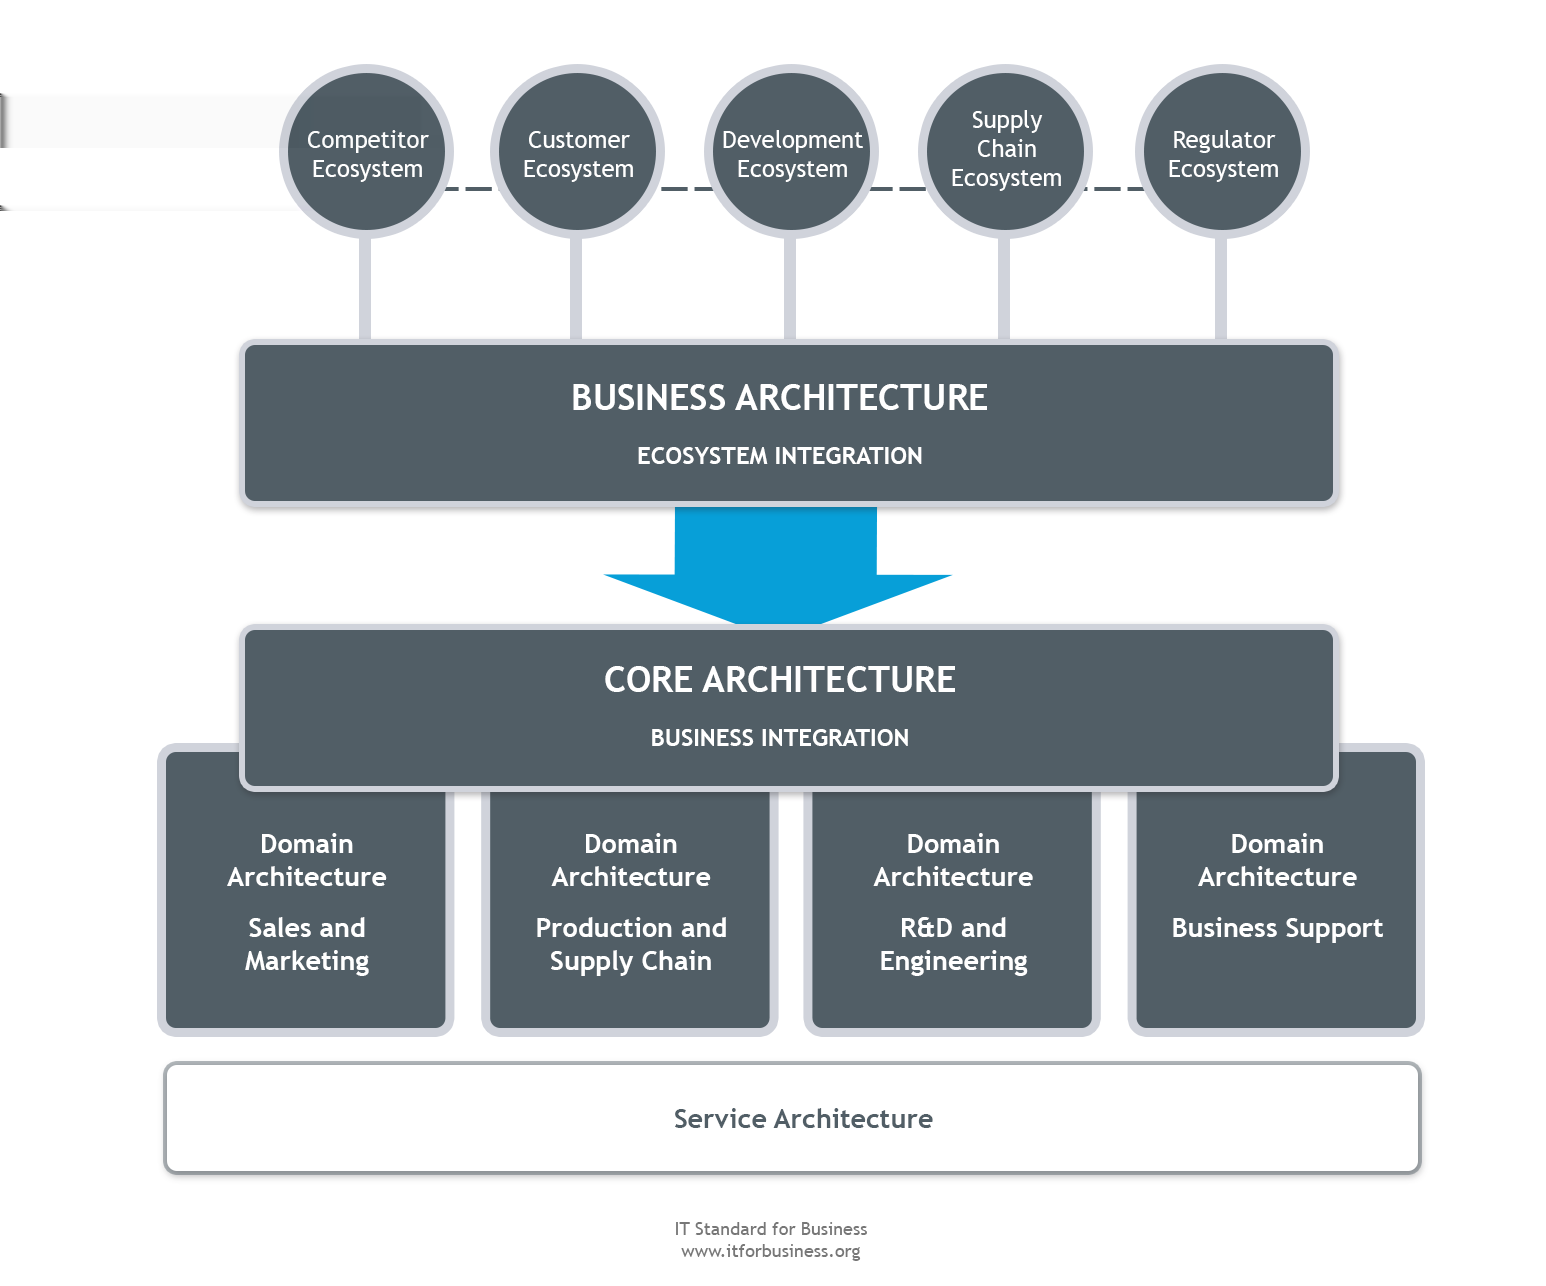 3.6 Strategy and Governance Enterprise Architecture Figure 3.6 The elements of Enterprise Architecture. The figure above presents the dynamics of an Enterprise Architecture.